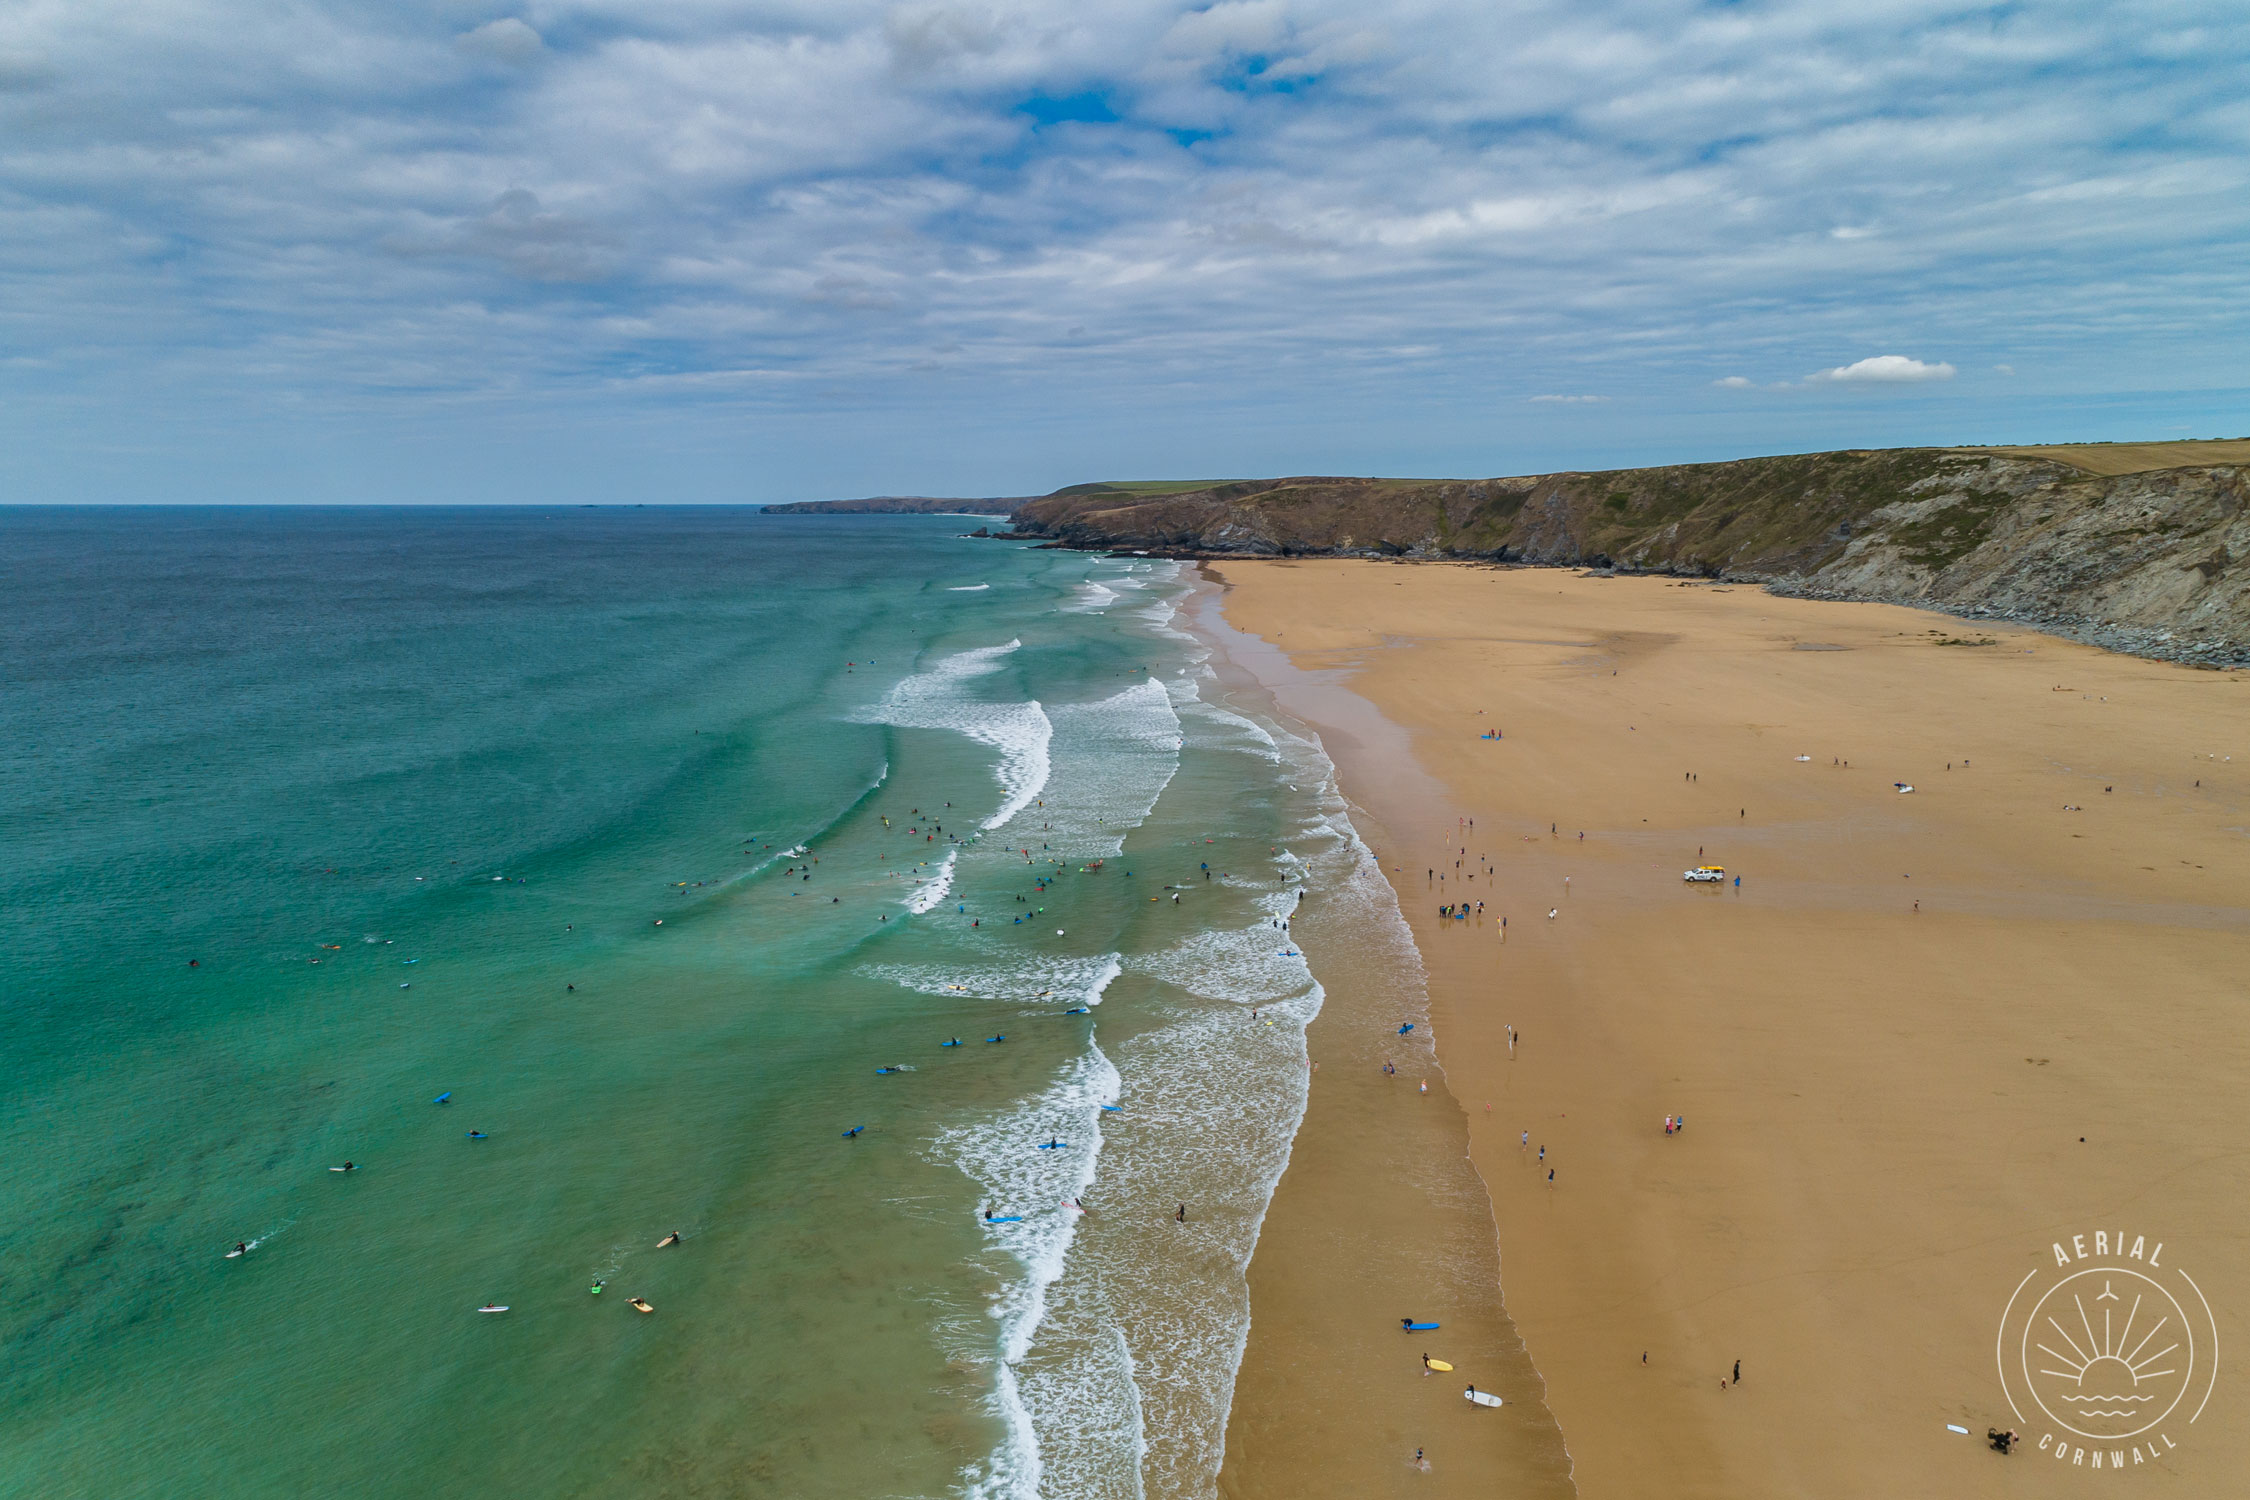 Location: Watergate Bay